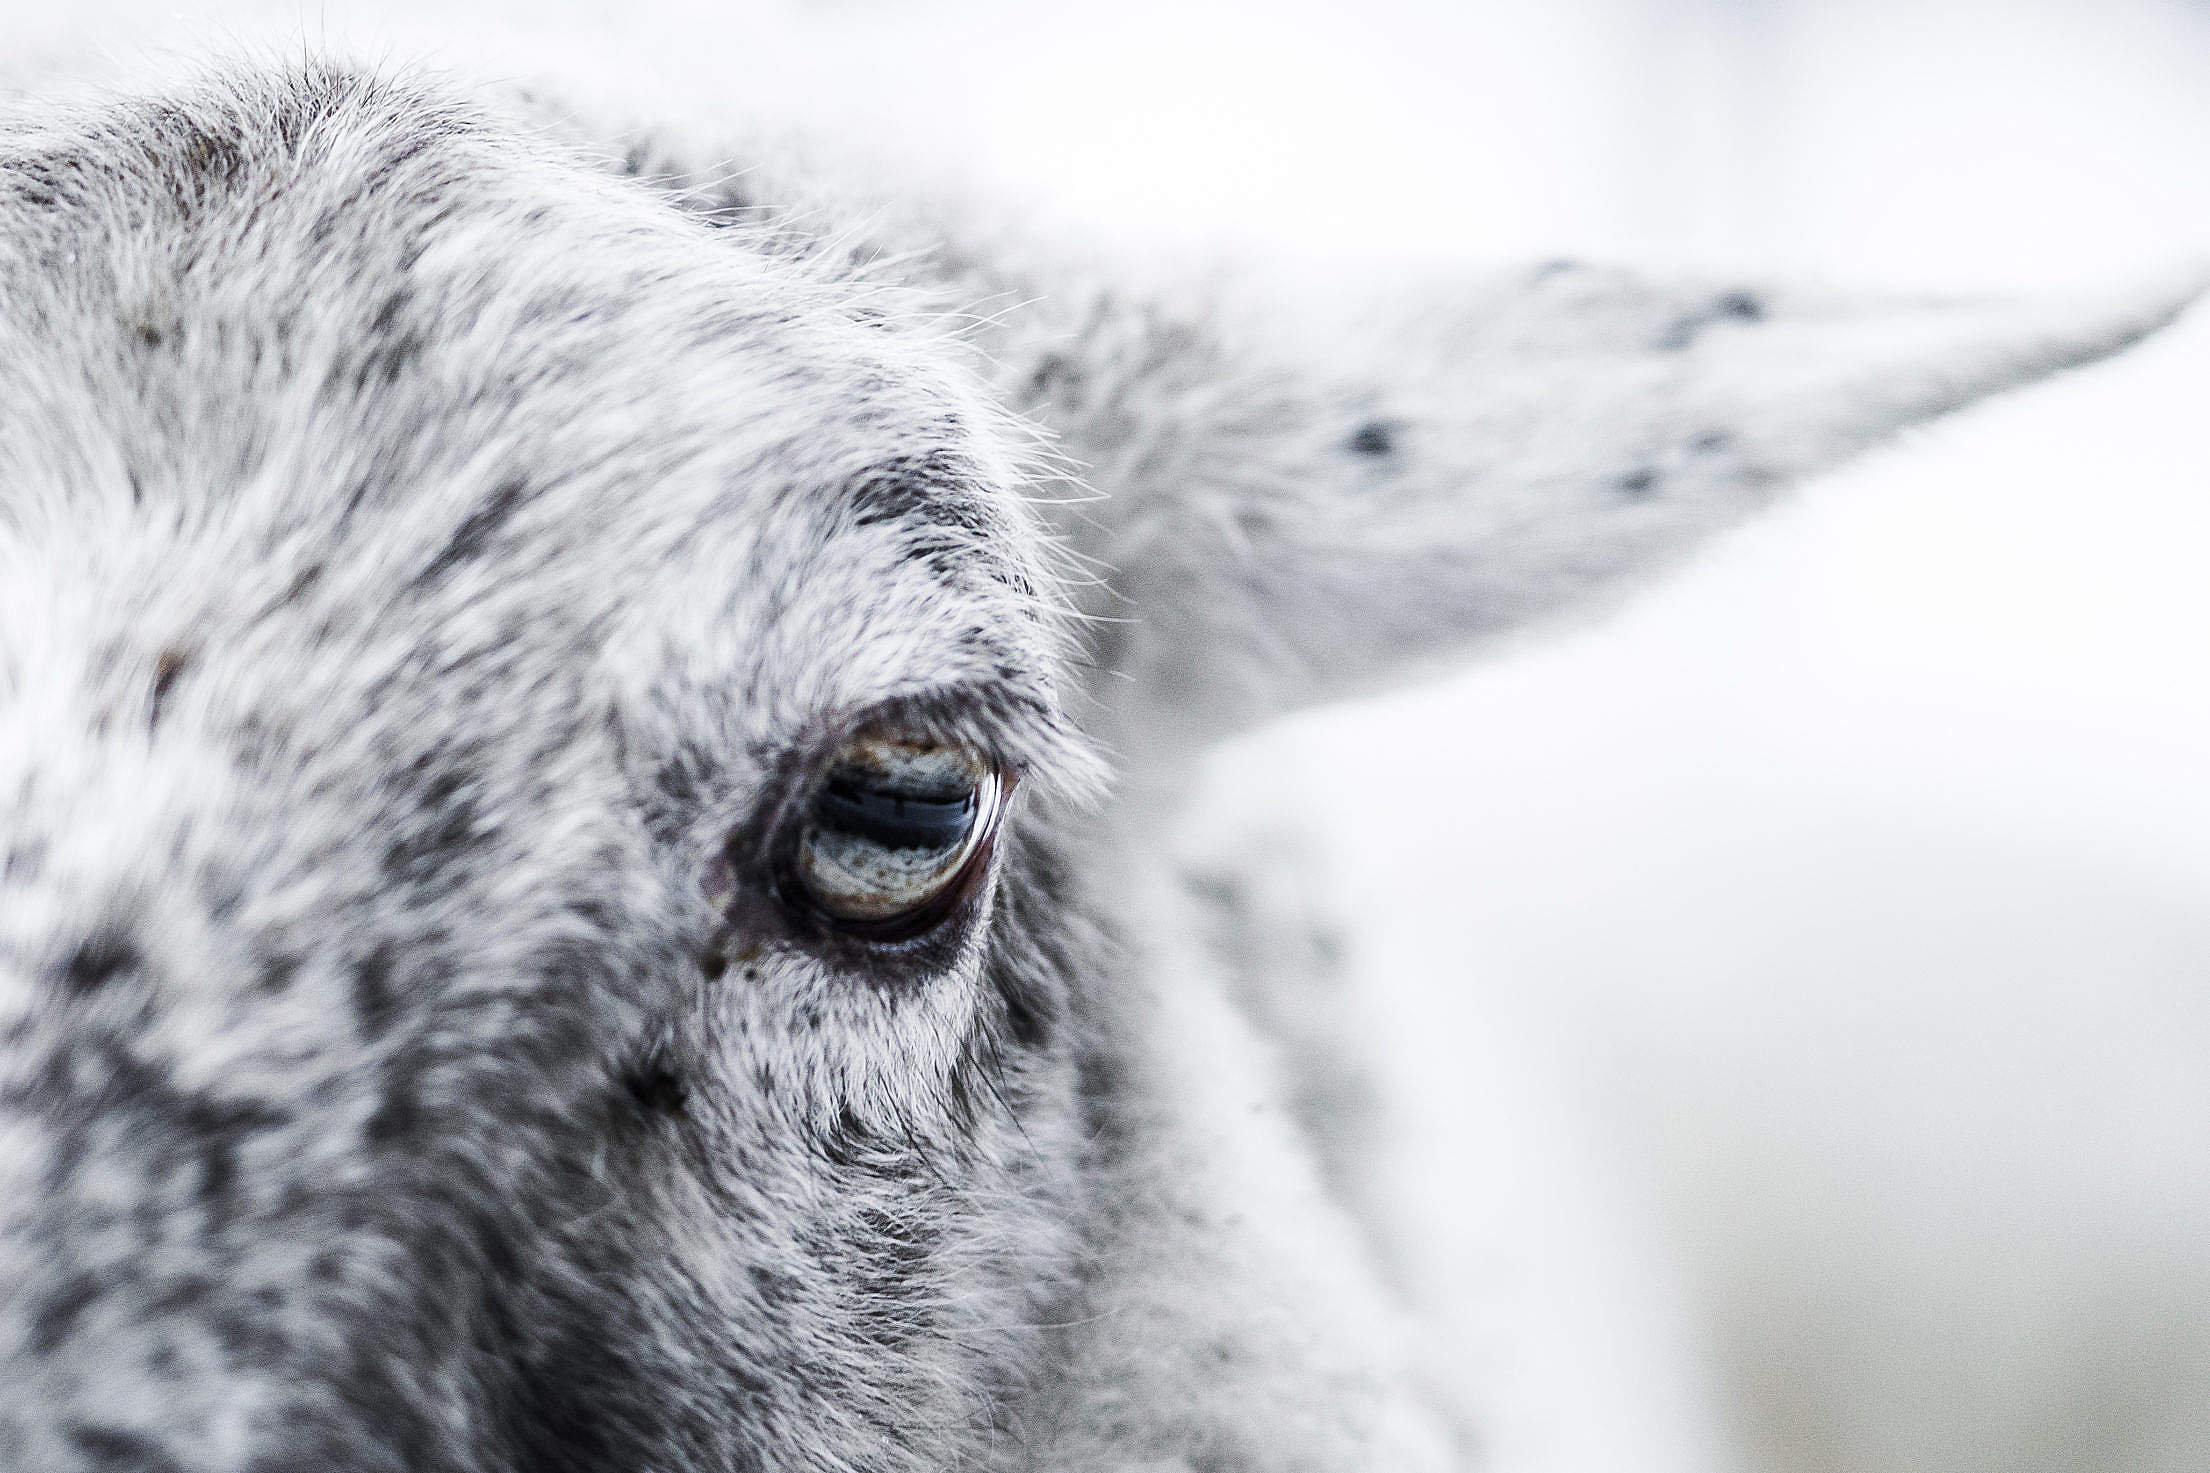 Sheep Eye Close Up Free Stock Photo